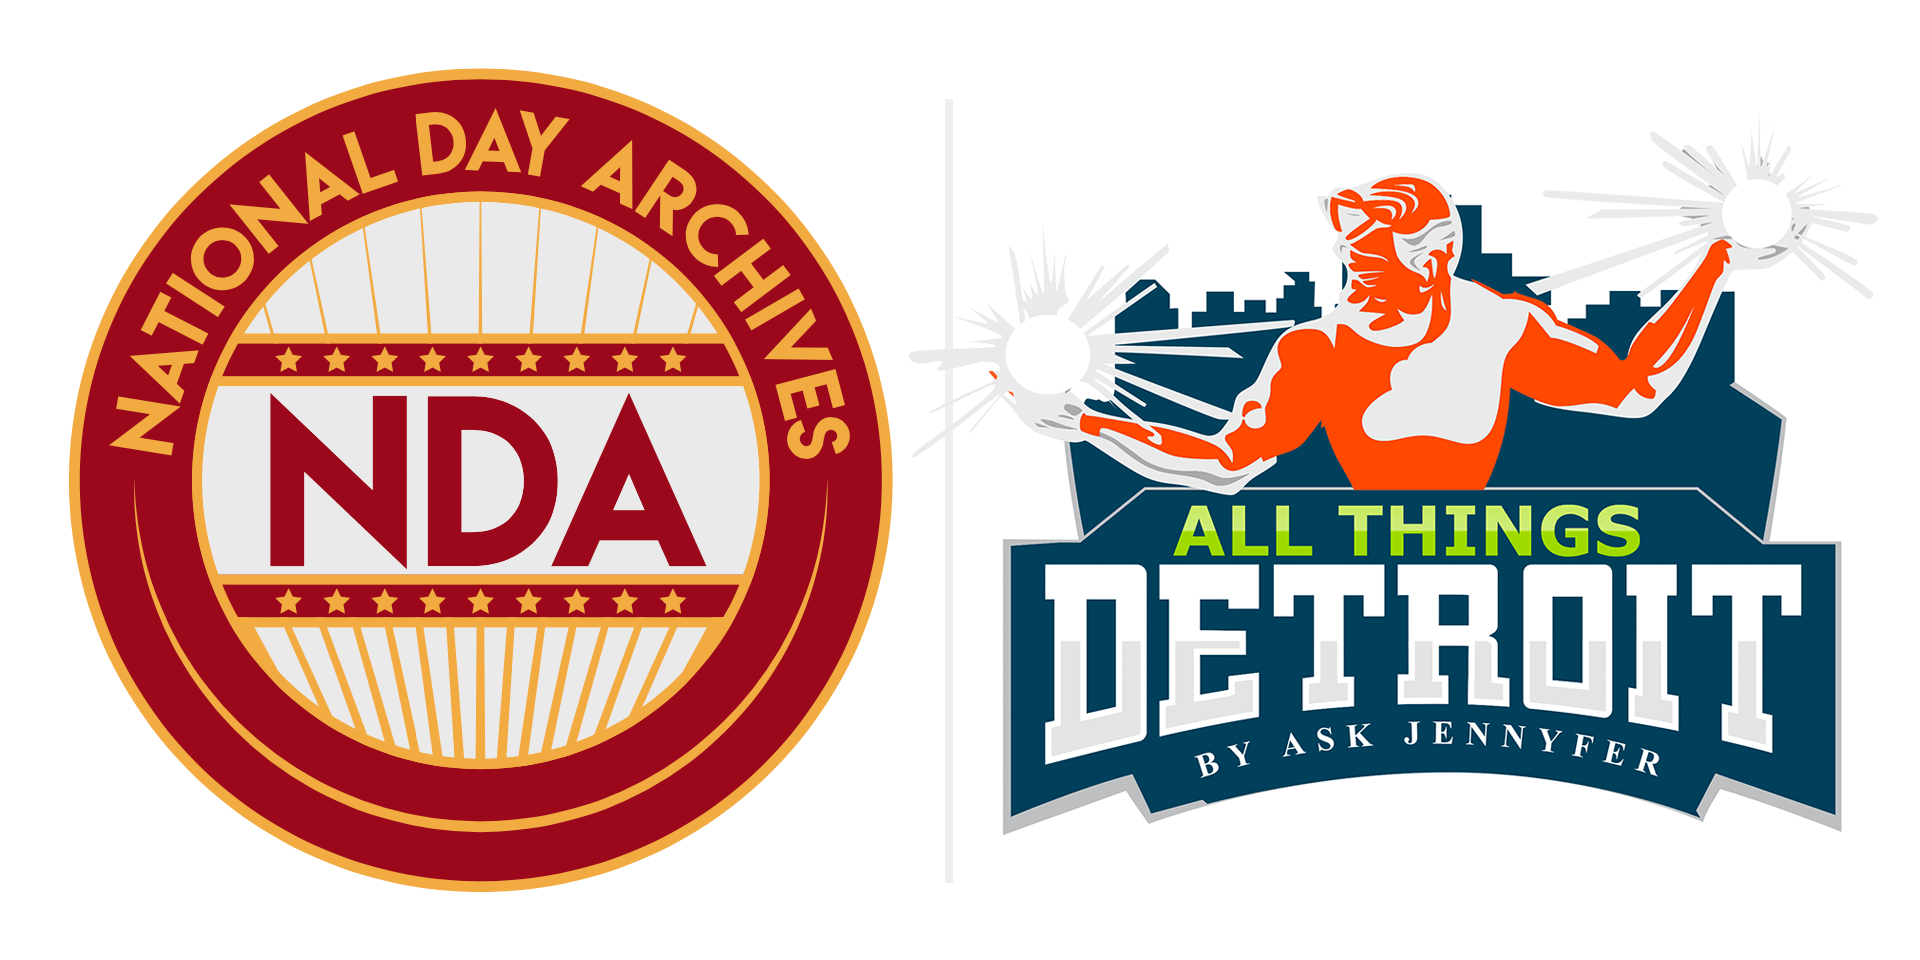 National Day Archives and All Things Detroit